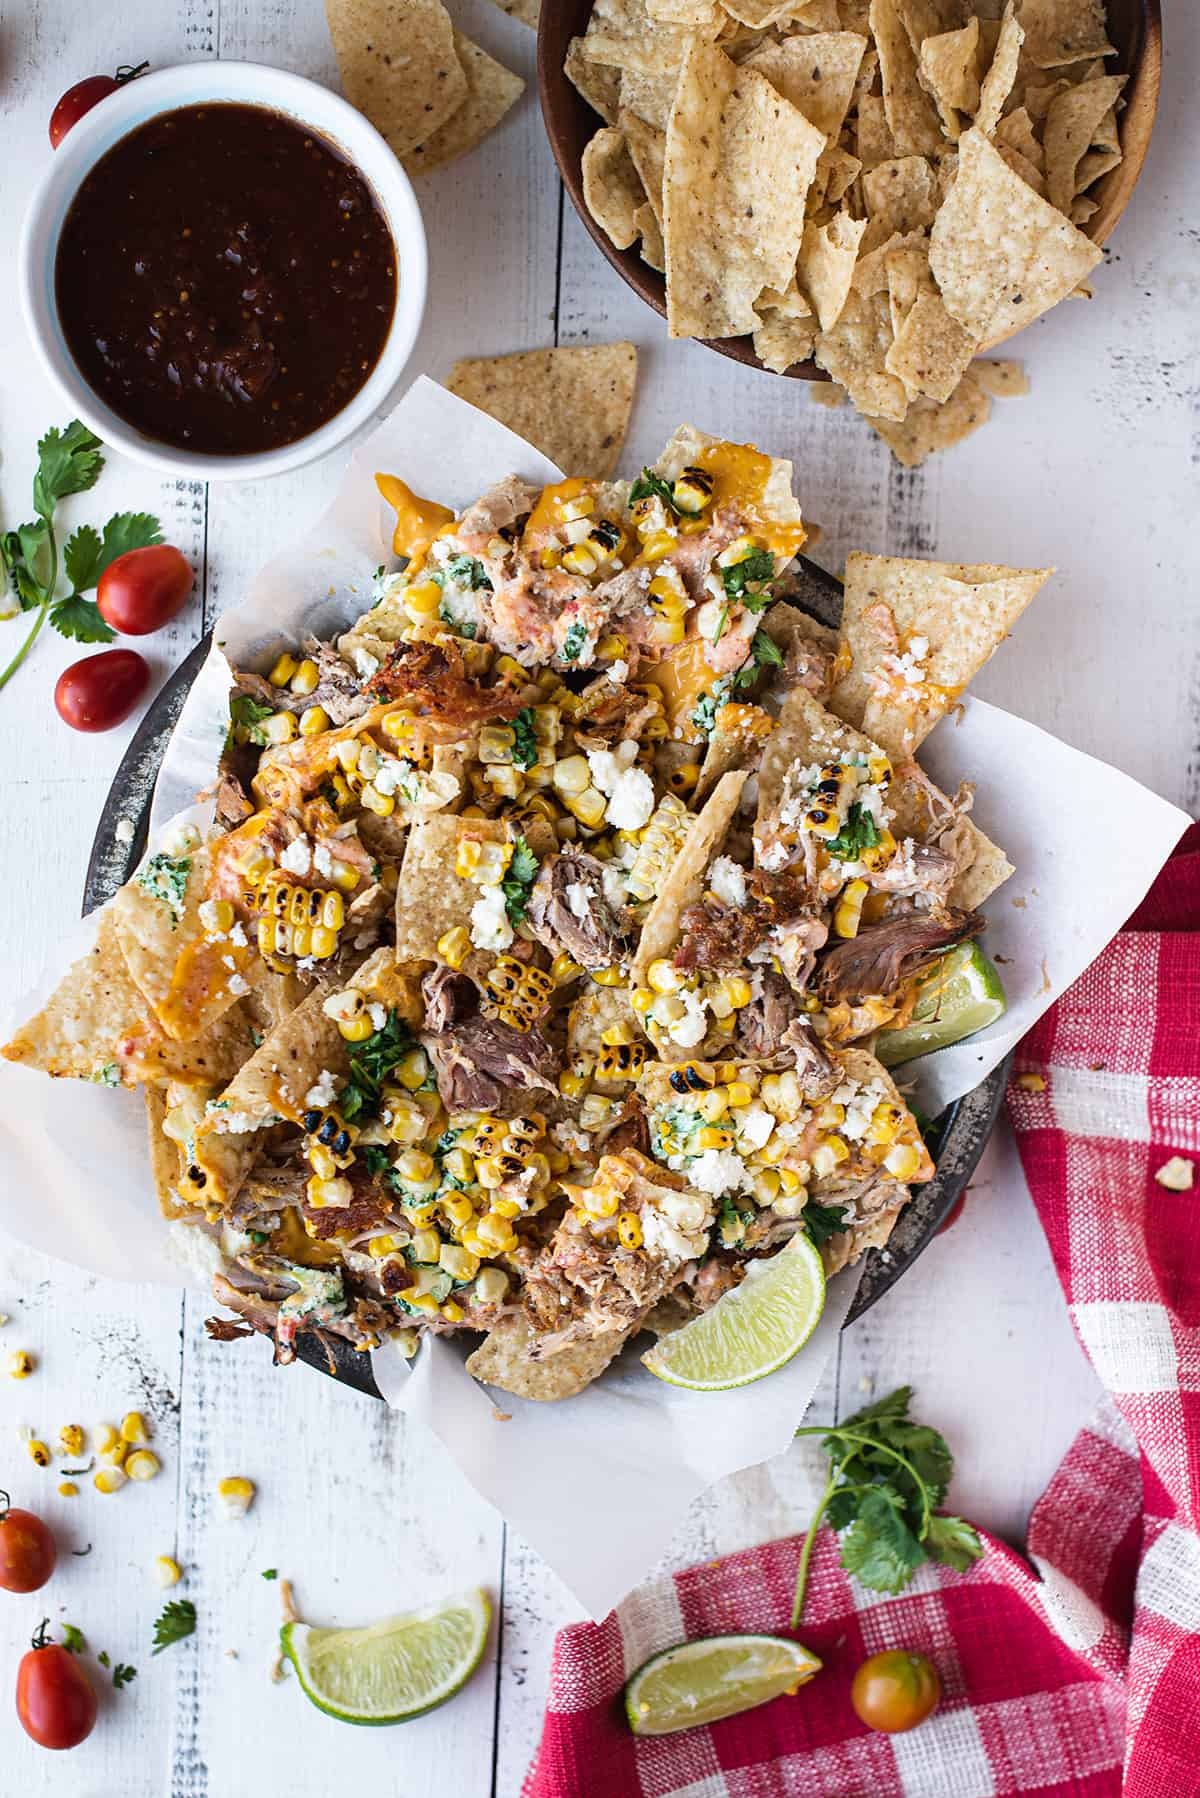 plate of loaded BBQ pork nachos on white table with red checkered napkin